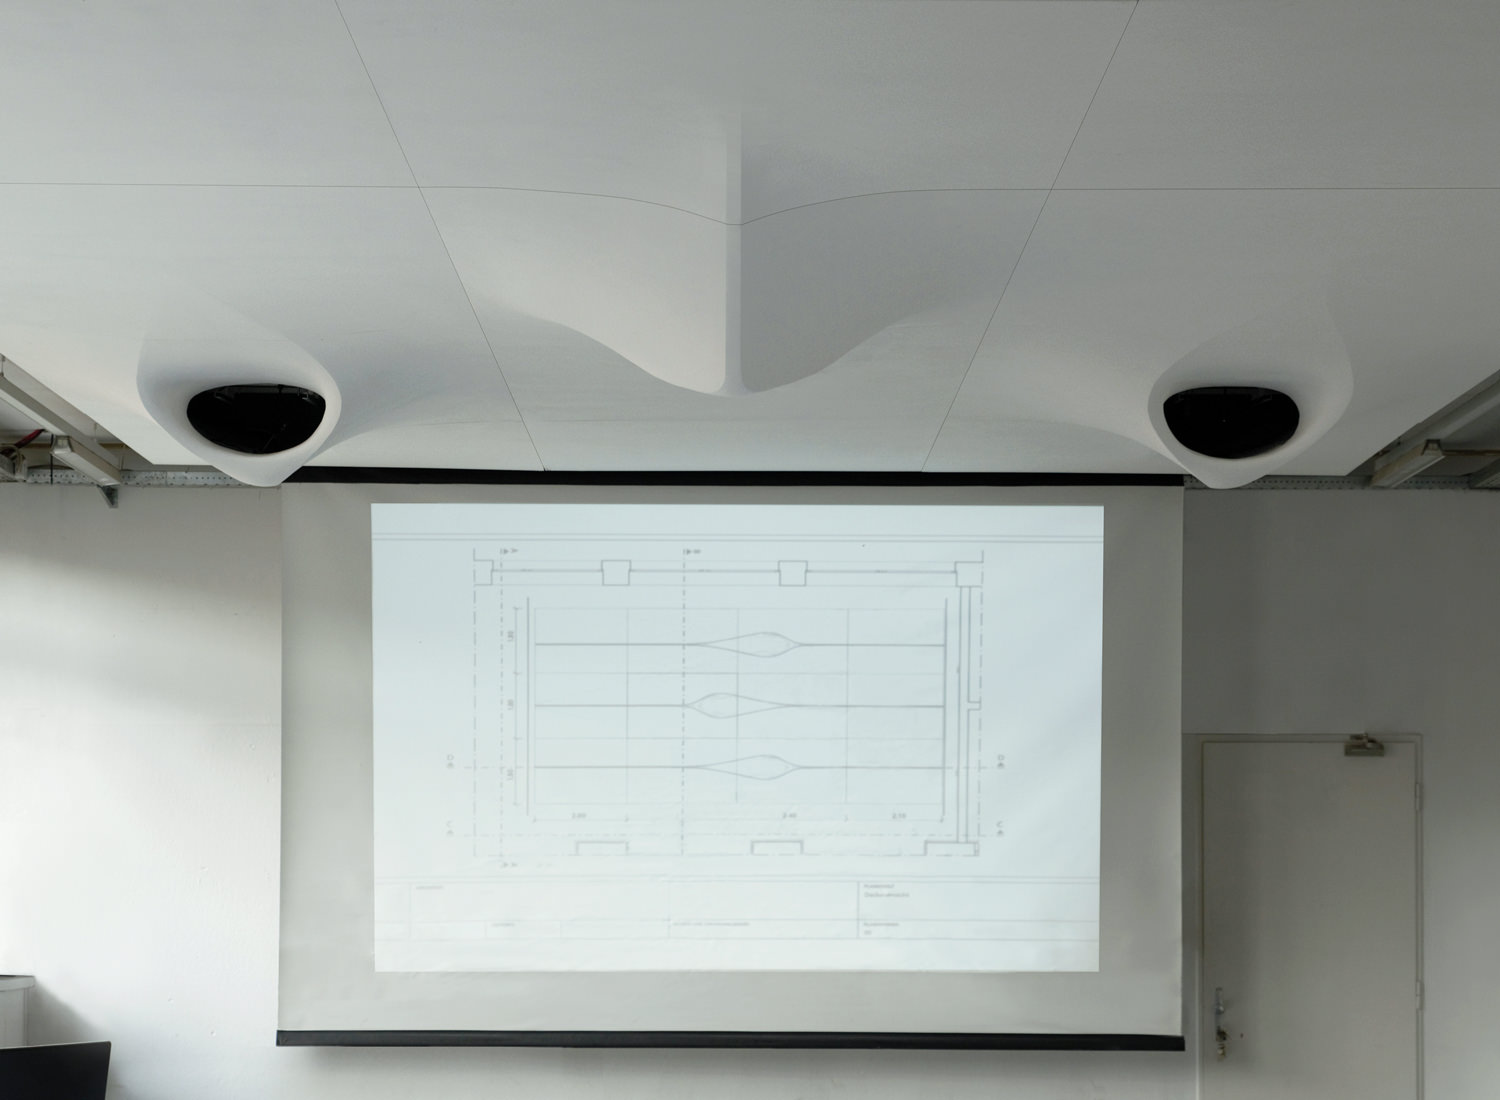 projector-ceiling-moh-architects-joerg-hugo-university-of-applied-arts-vienna3.jpg